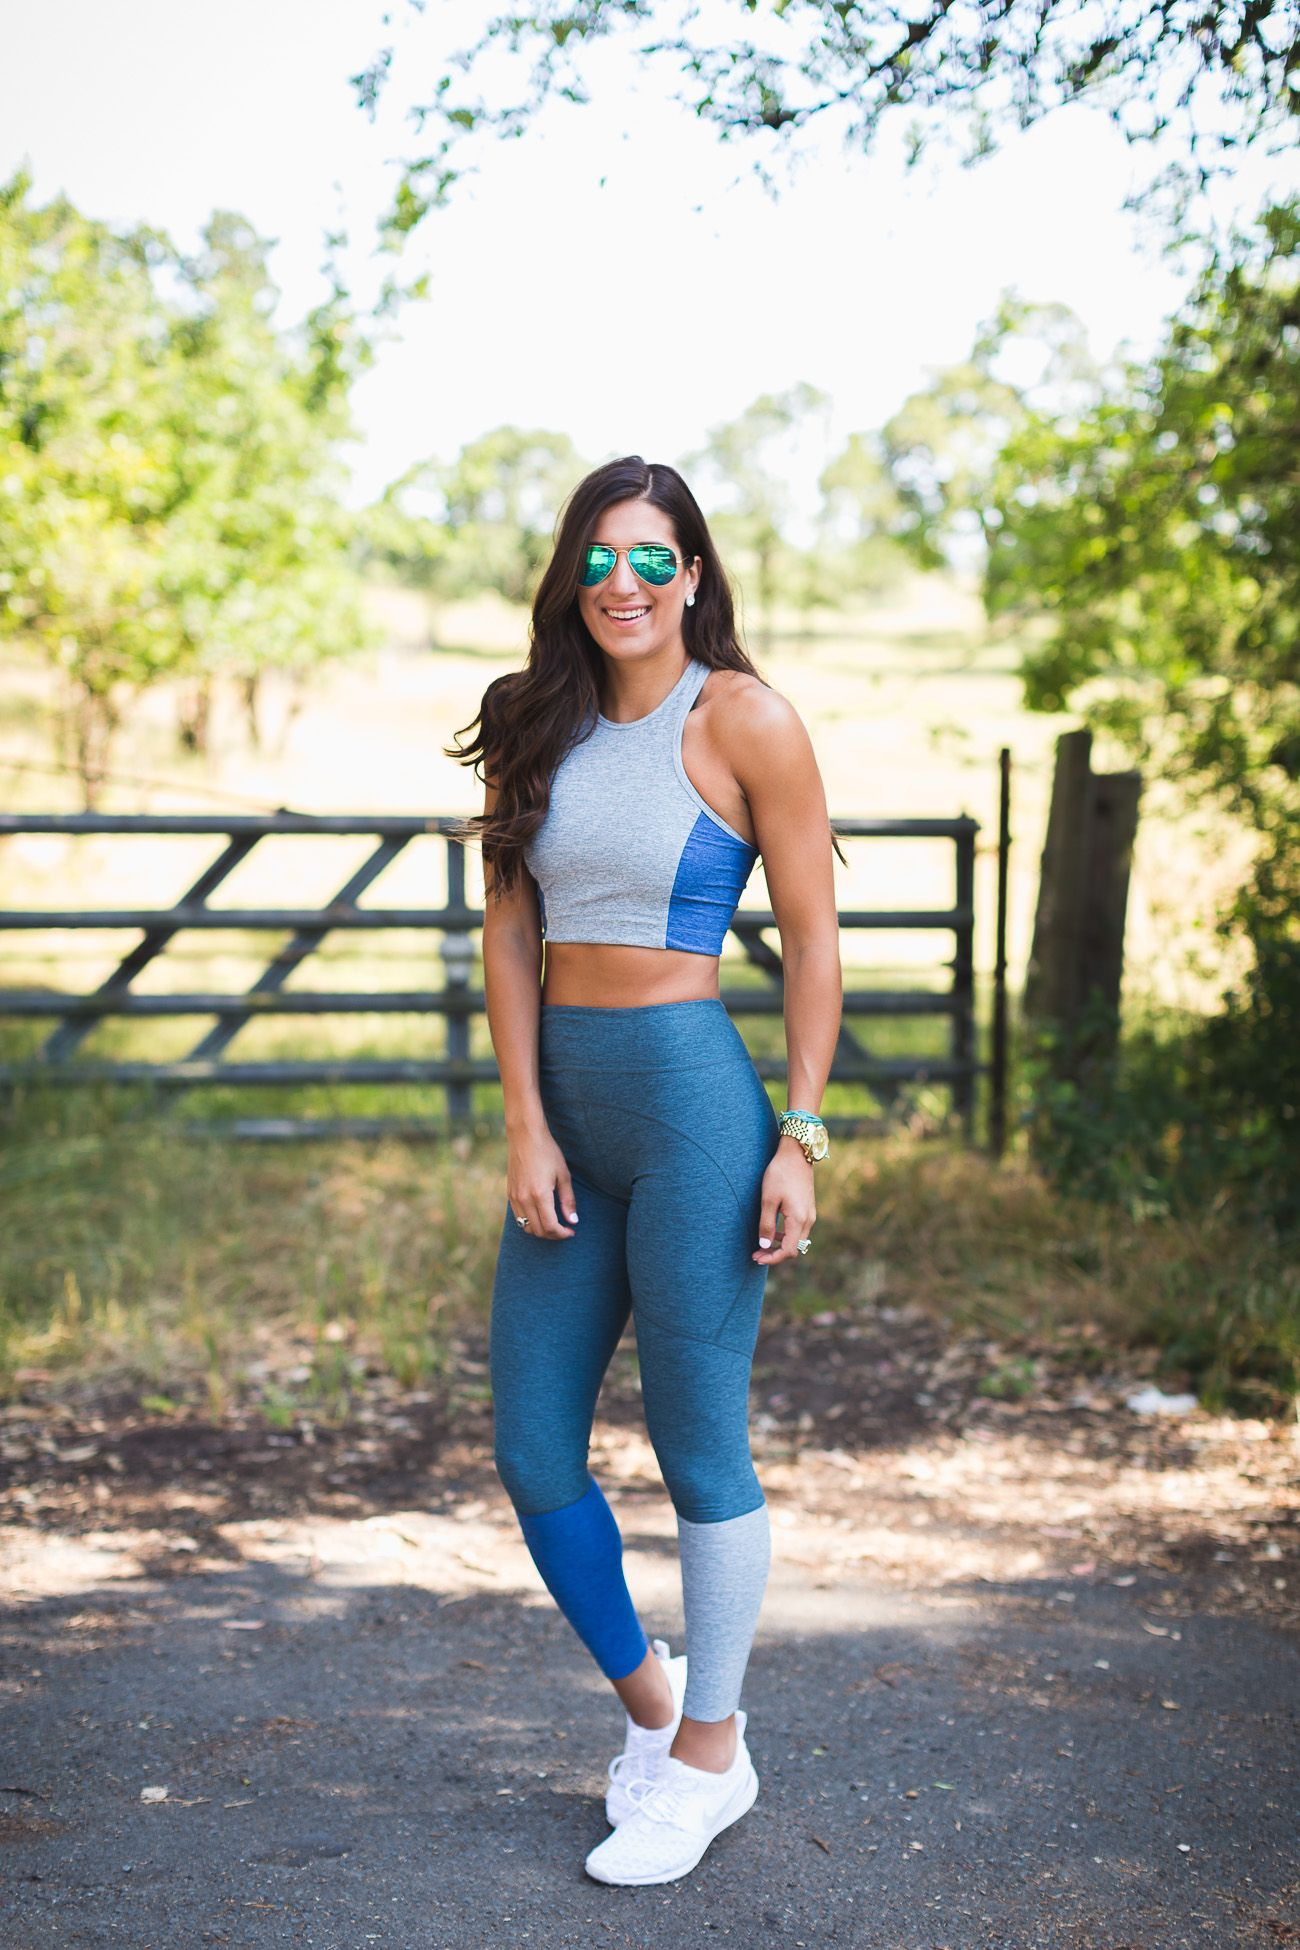 077de418ab66e outdoor voices activewear, outdoor voices dipped warmup leggings, outdoor  voices athena crop top, compression leggings, fitness, fit life, girl  gains, ...